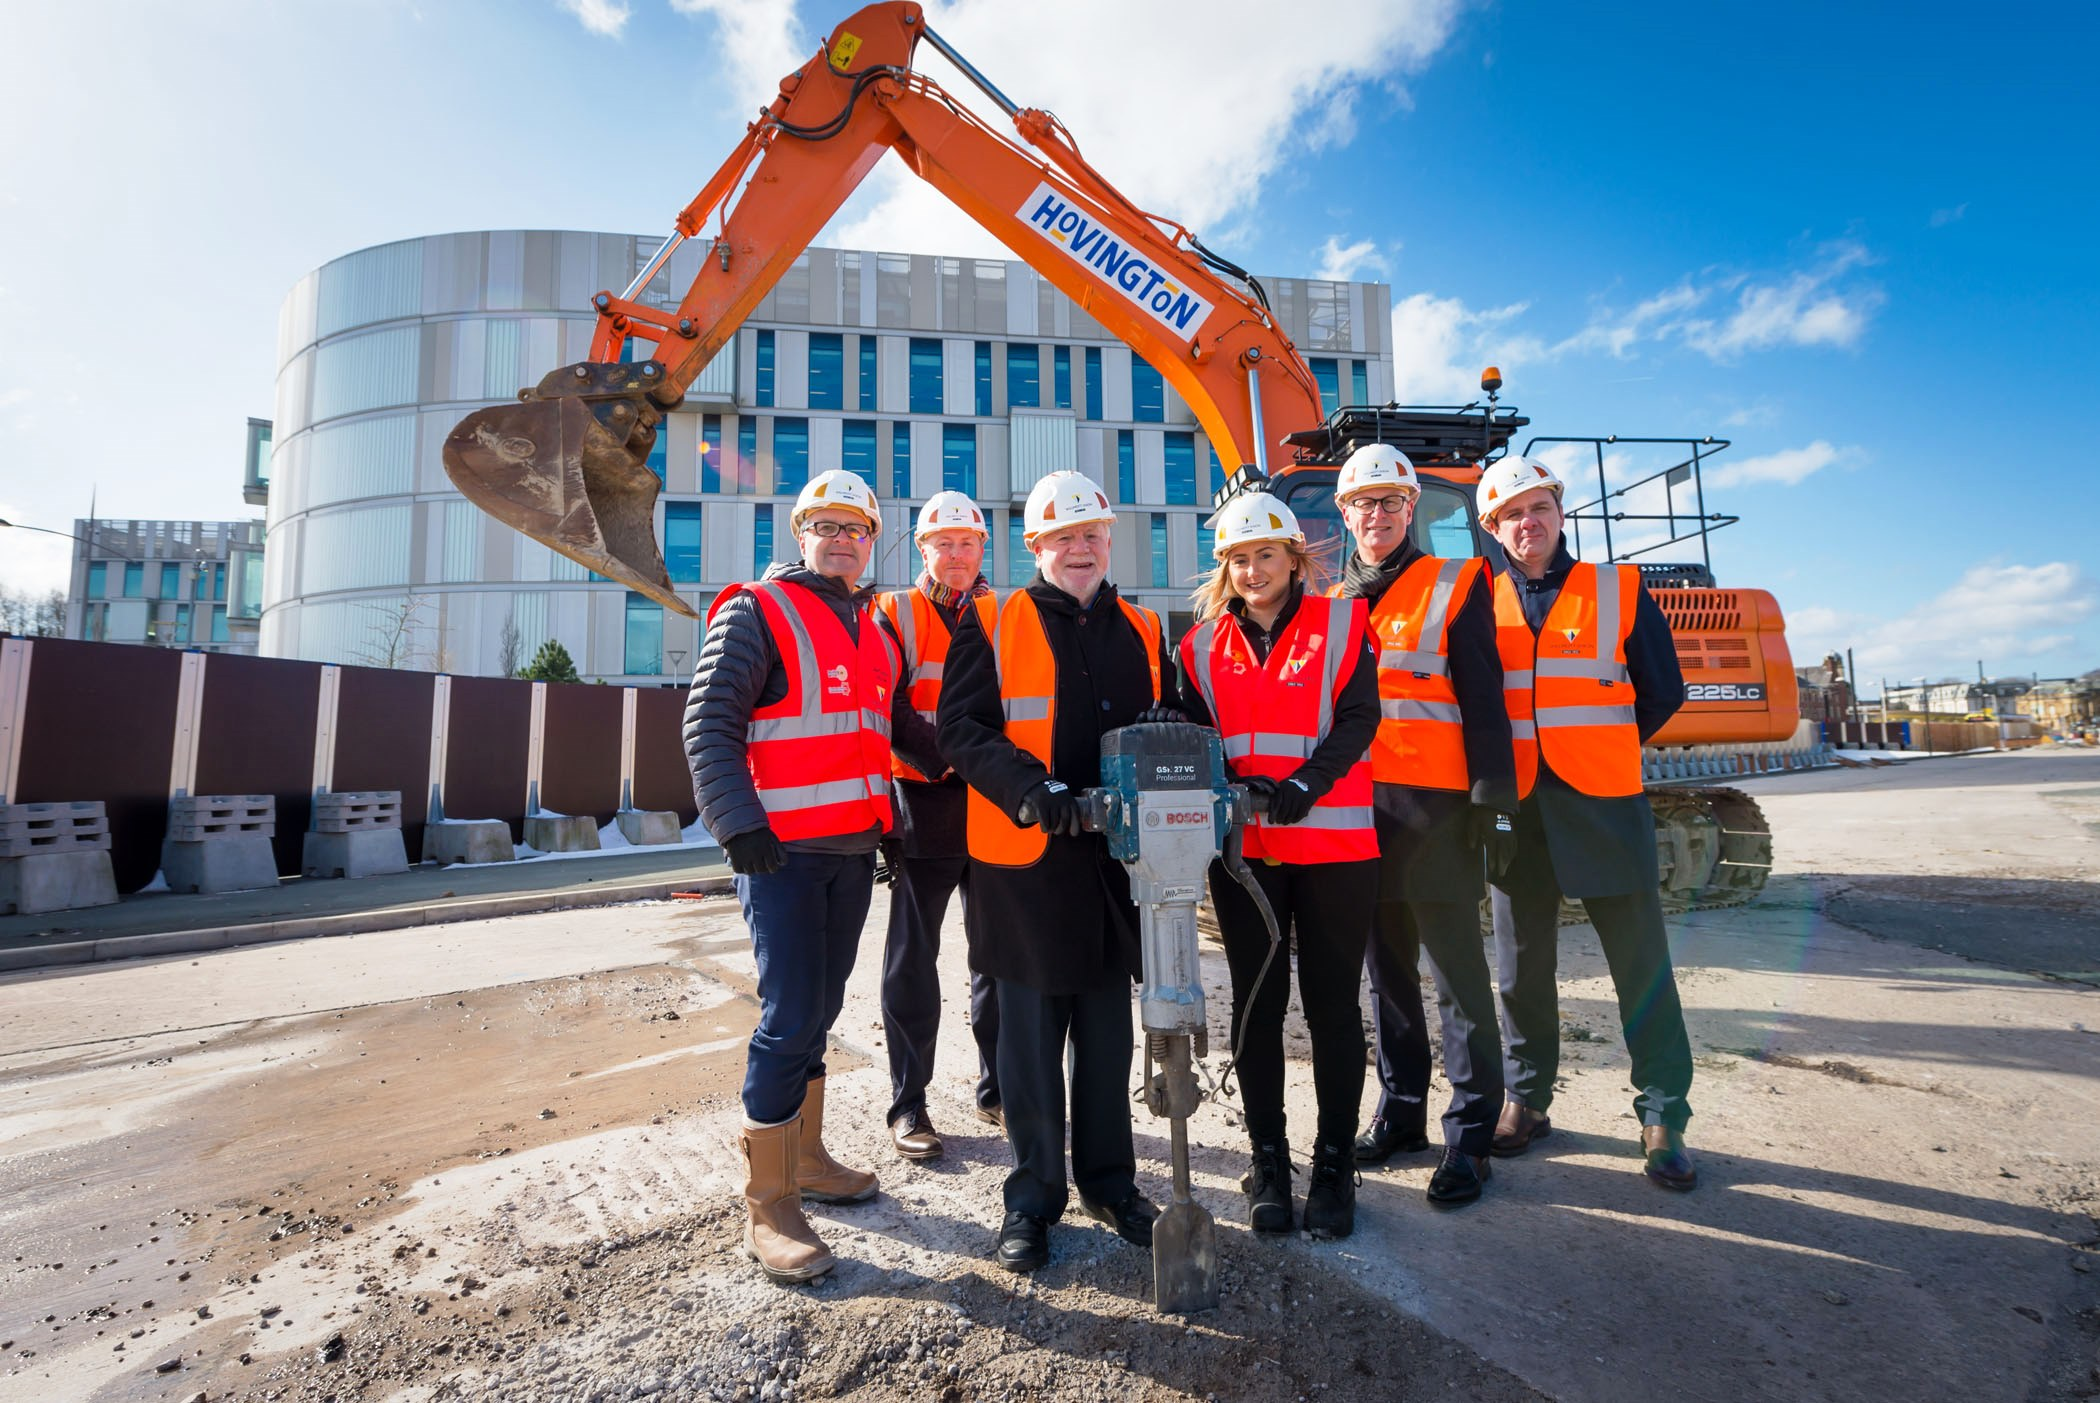 Image: Work starts on new shopping and leisure complex Rochdale Riverside